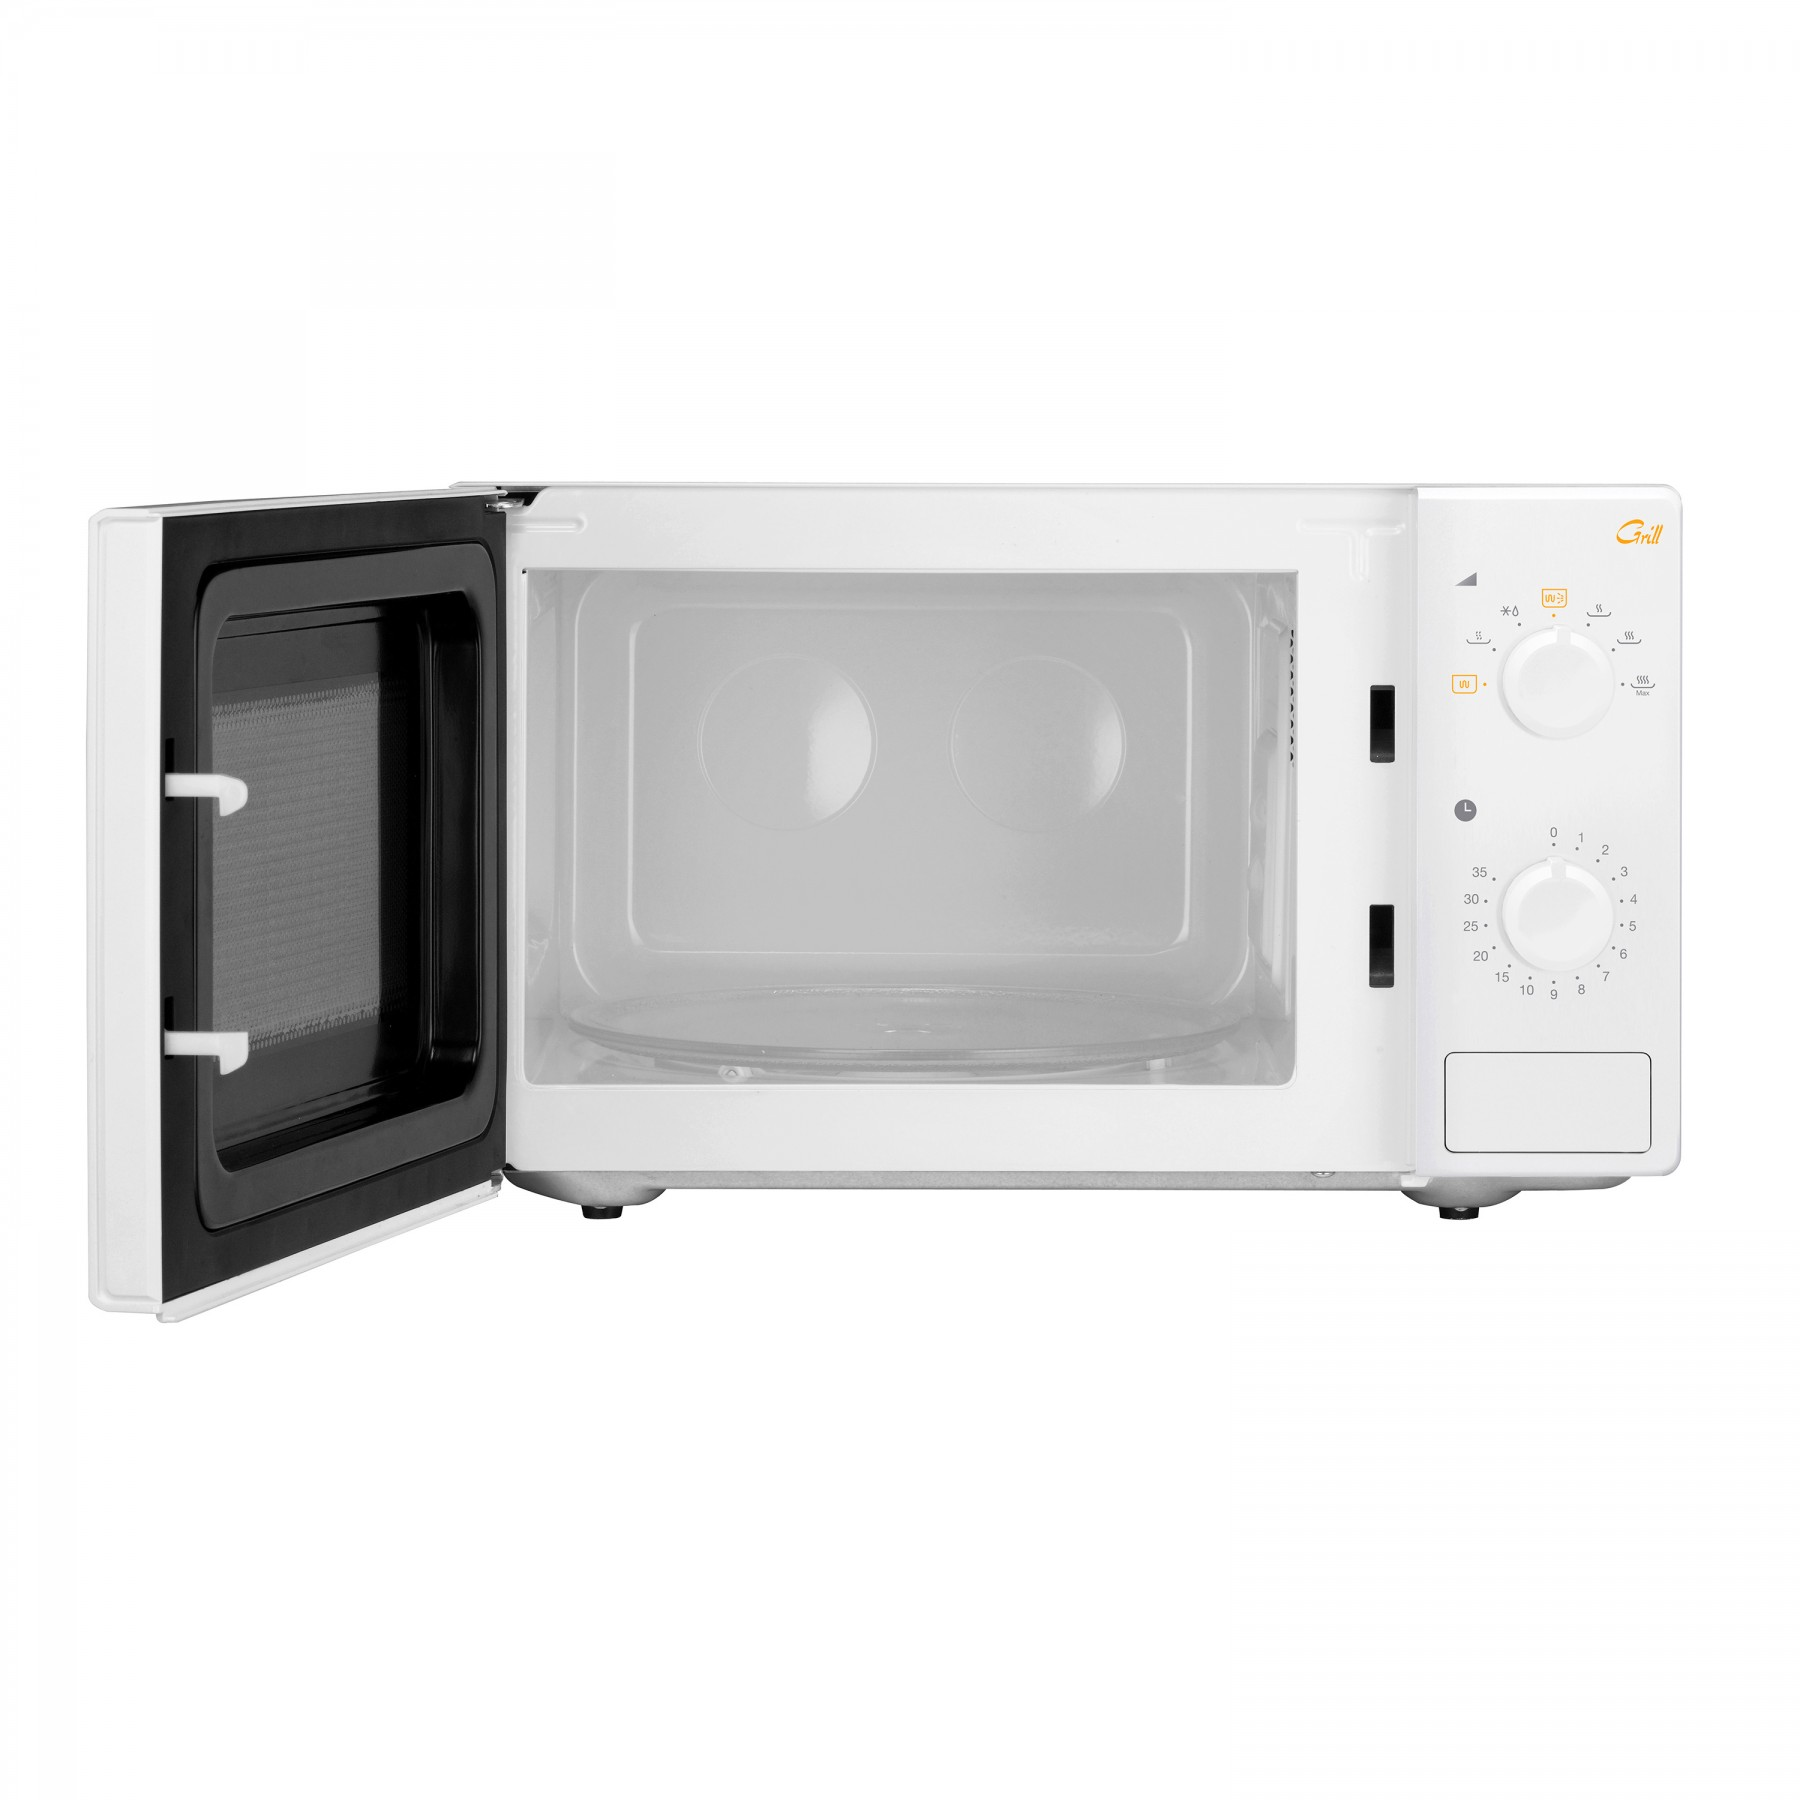 14287099232 KQG-6L77 MECHANICAL MICROWAVE OVEN, GRILL, 20L - Daewoo Electronics